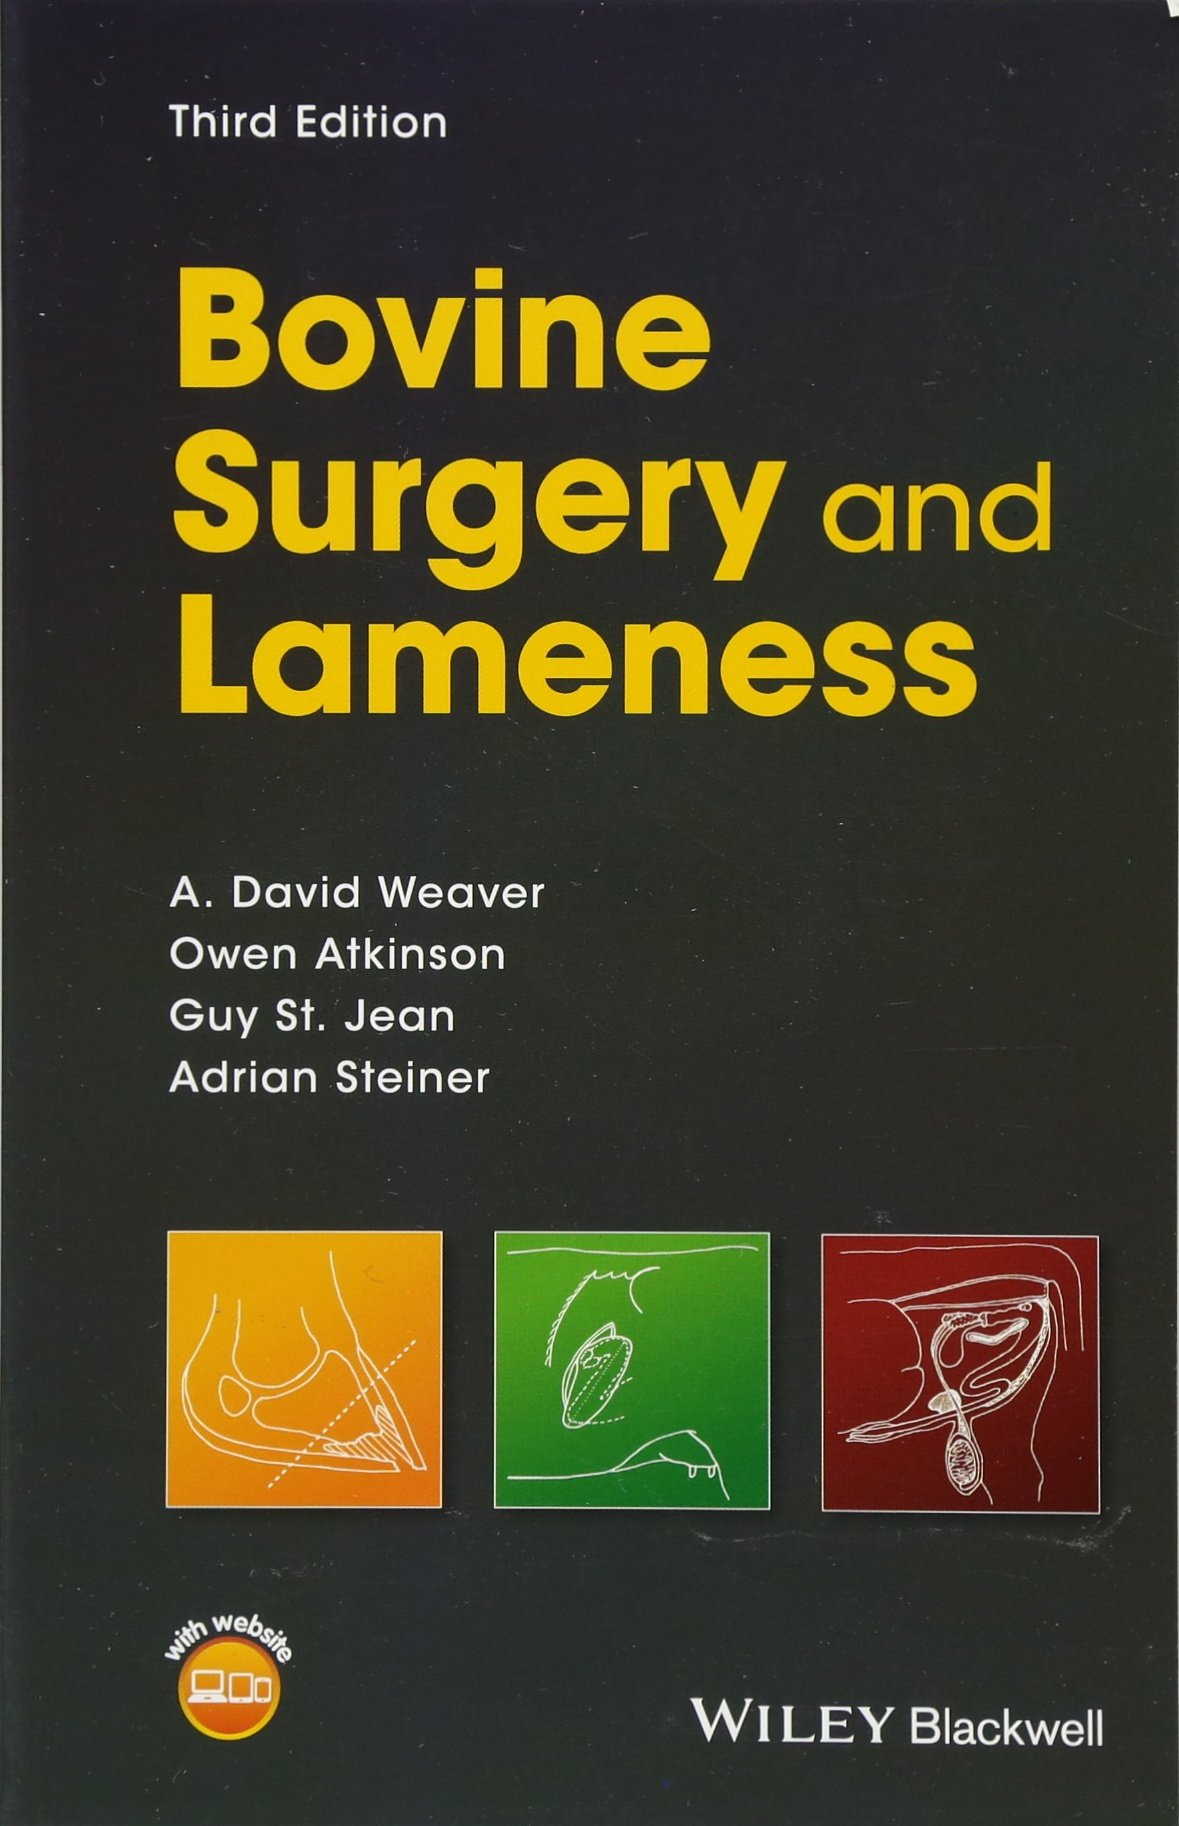 Bovine Surgery and Lameness by Wiley-Blackwell